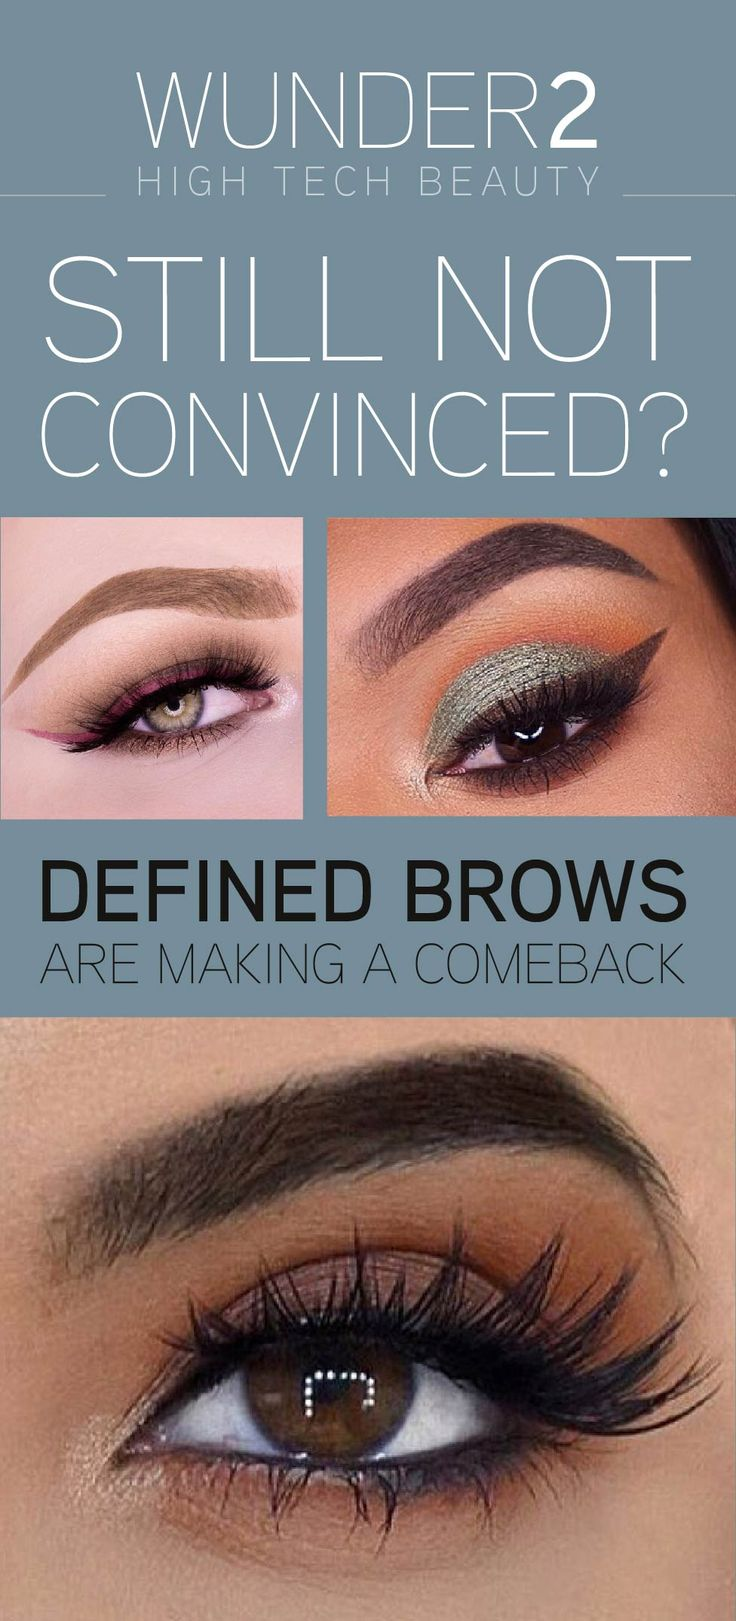 Eyes are the first part of another person we look at - therefore you will want to use a product that will frame them perfectly. That product is WunderBrow! Choose from 5 shades - Blonde, Brunette, Auburn, Black/Brown or Jet Black. Order today for $22 to get FREE shipping & a 30 day money back guarantee. Simply click on the 'visit' button above. The order form takes less than 2 minutes to complete. Once done you will receive an order confirmation email. Welcome to the future of beautiful…